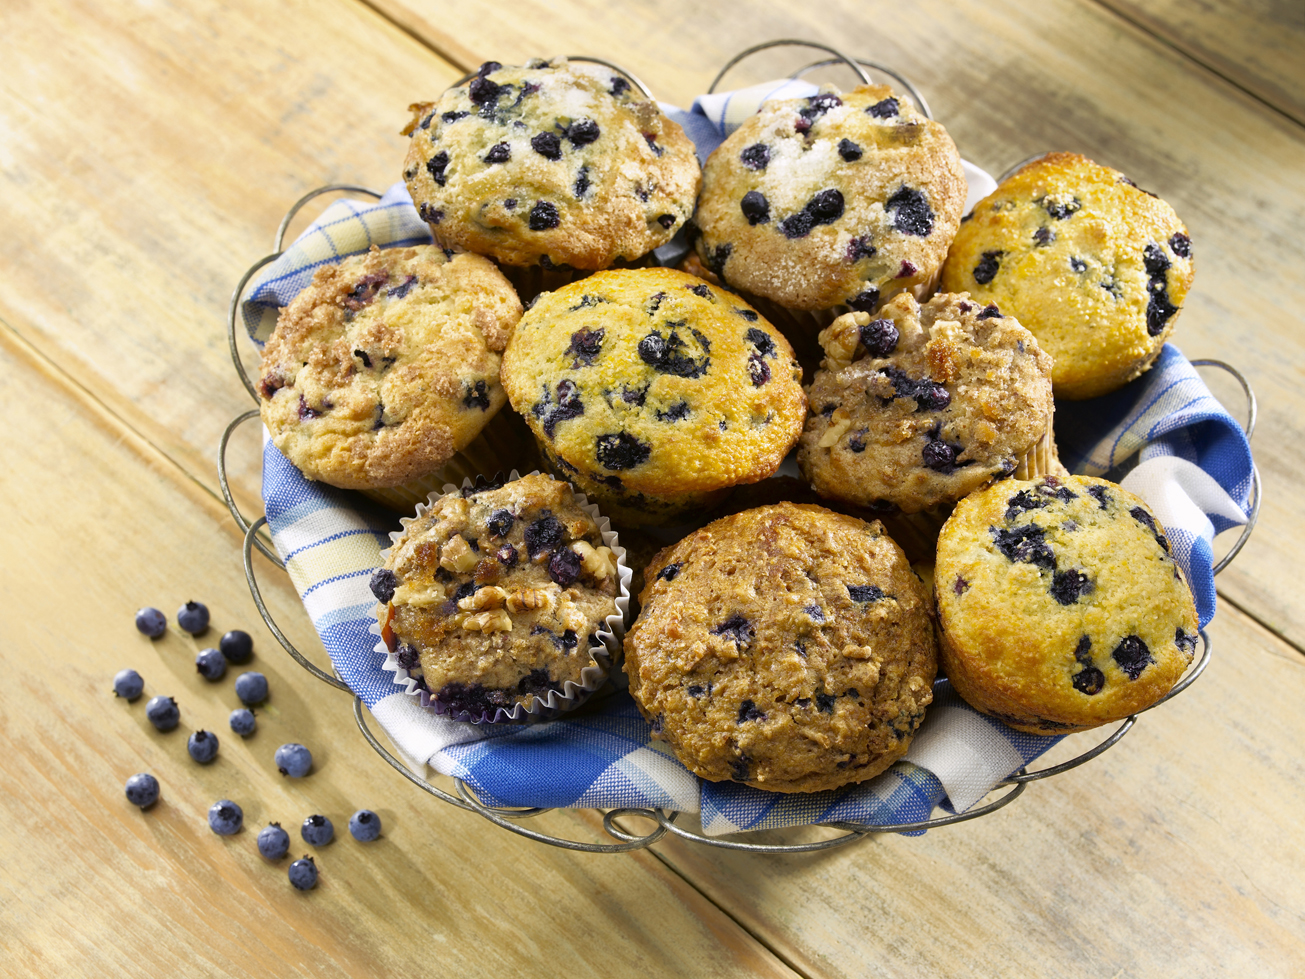 Aunt Mary's Wild Blueberry Muffins